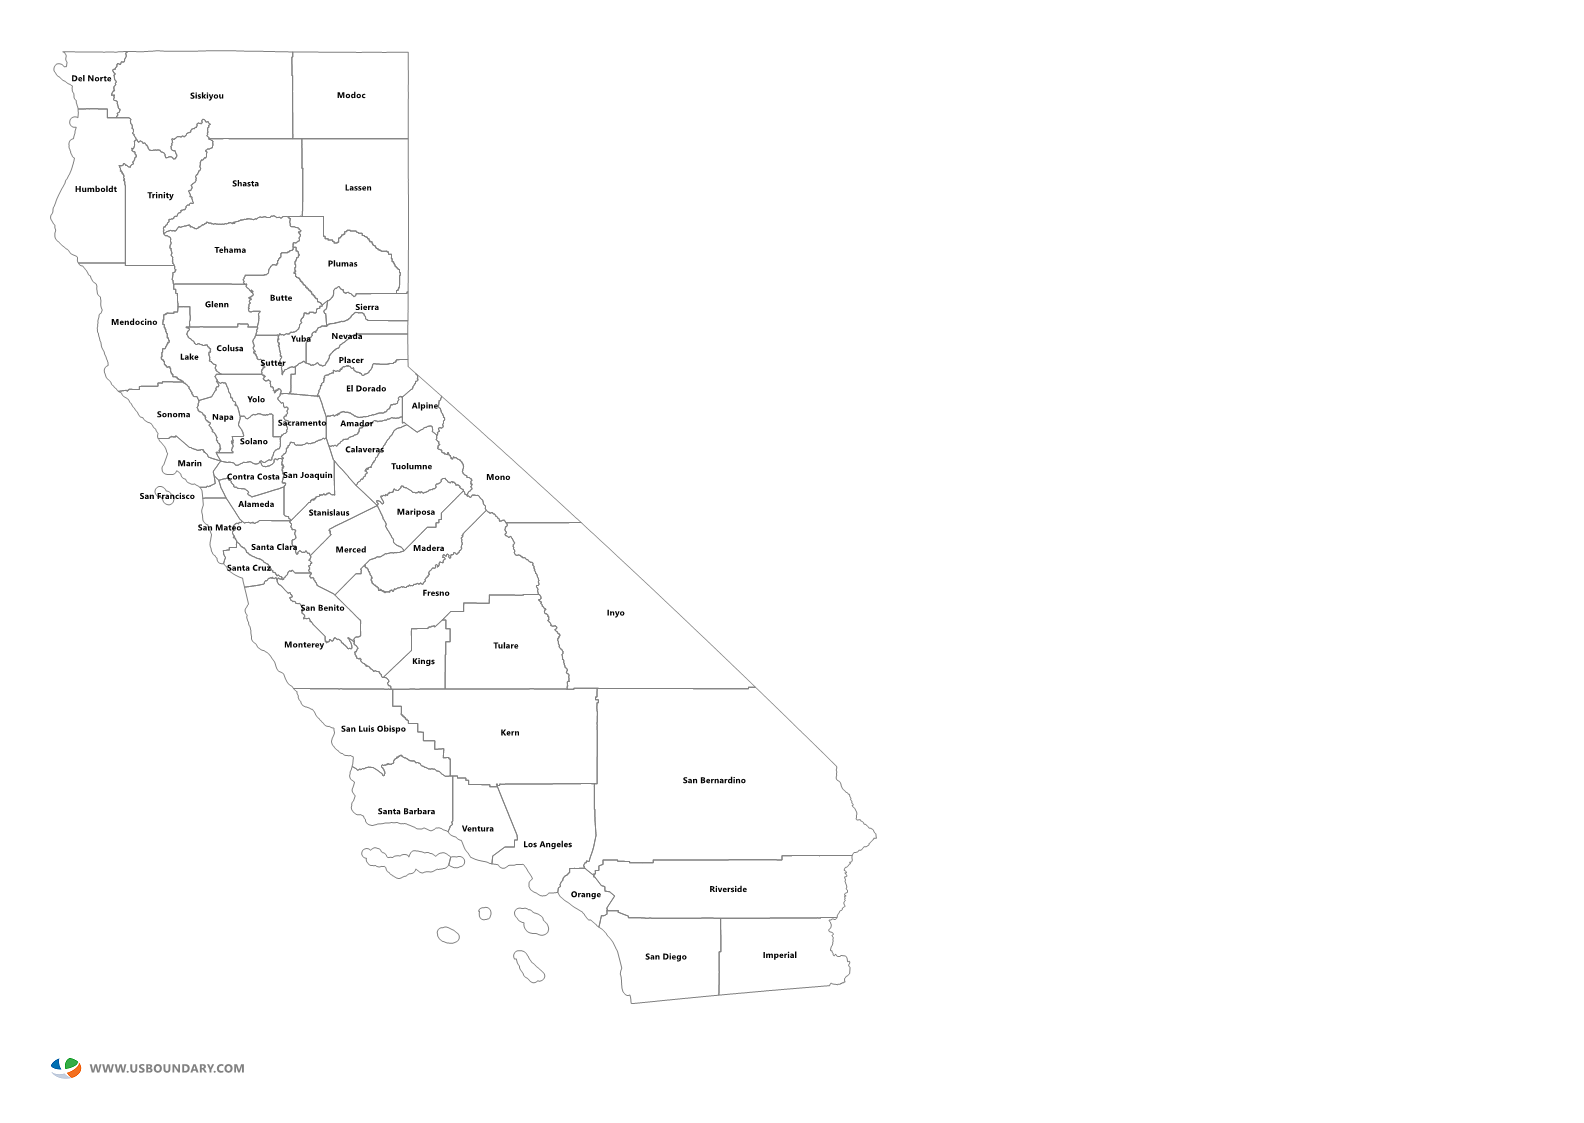 California state outline png. Counties maps download map